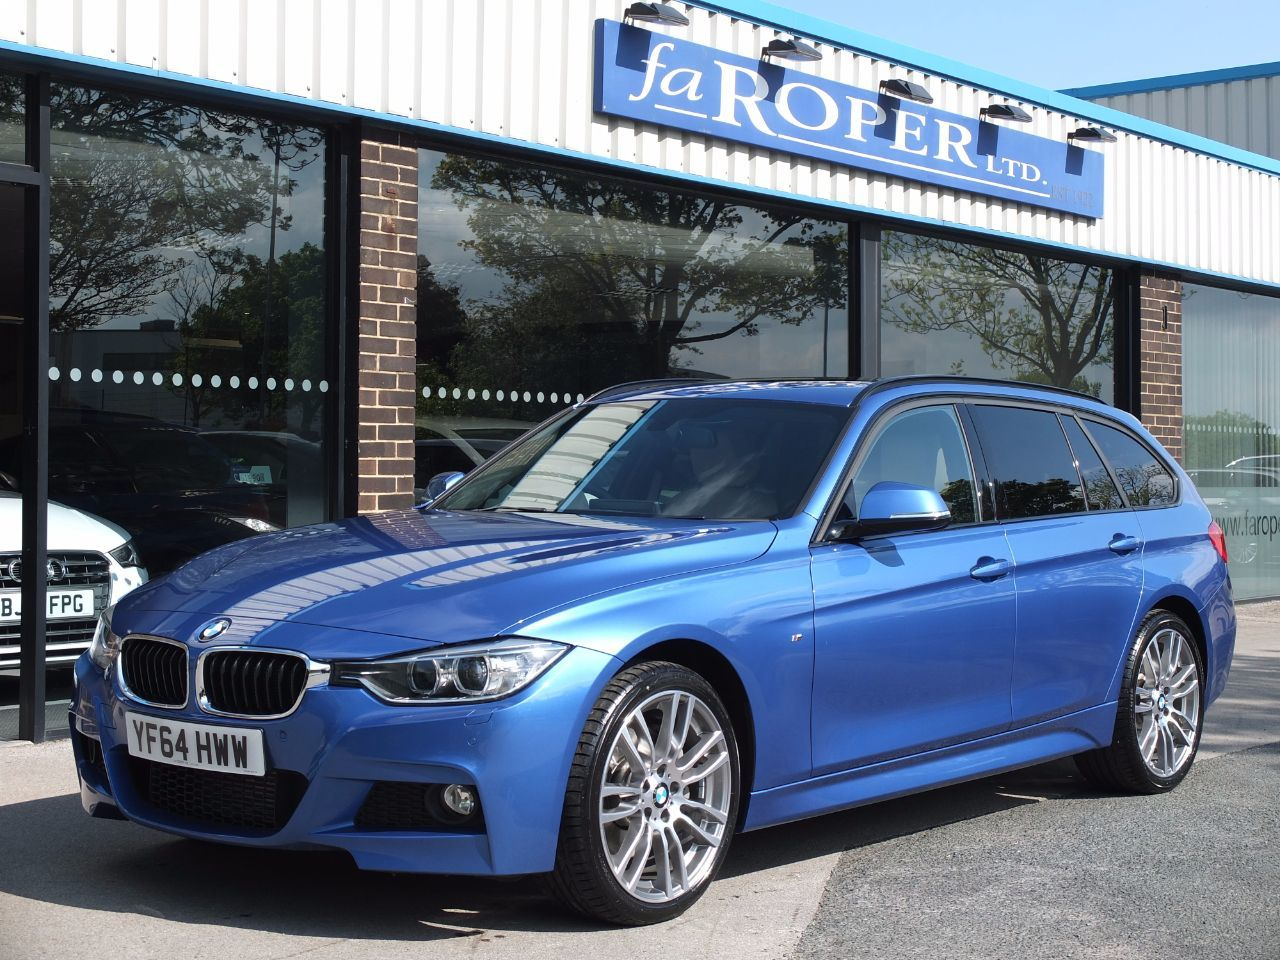 BMW 3 Series 3.0 335d xDrive M Sport Touring Auto ++++Spec Estate Diesel Estoril Blue MetallicBMW 3 Series 3.0 335d xDrive M Sport Touring Auto ++++Spec Estate Diesel Estoril Blue Metallic at fa Roper Ltd Bradford